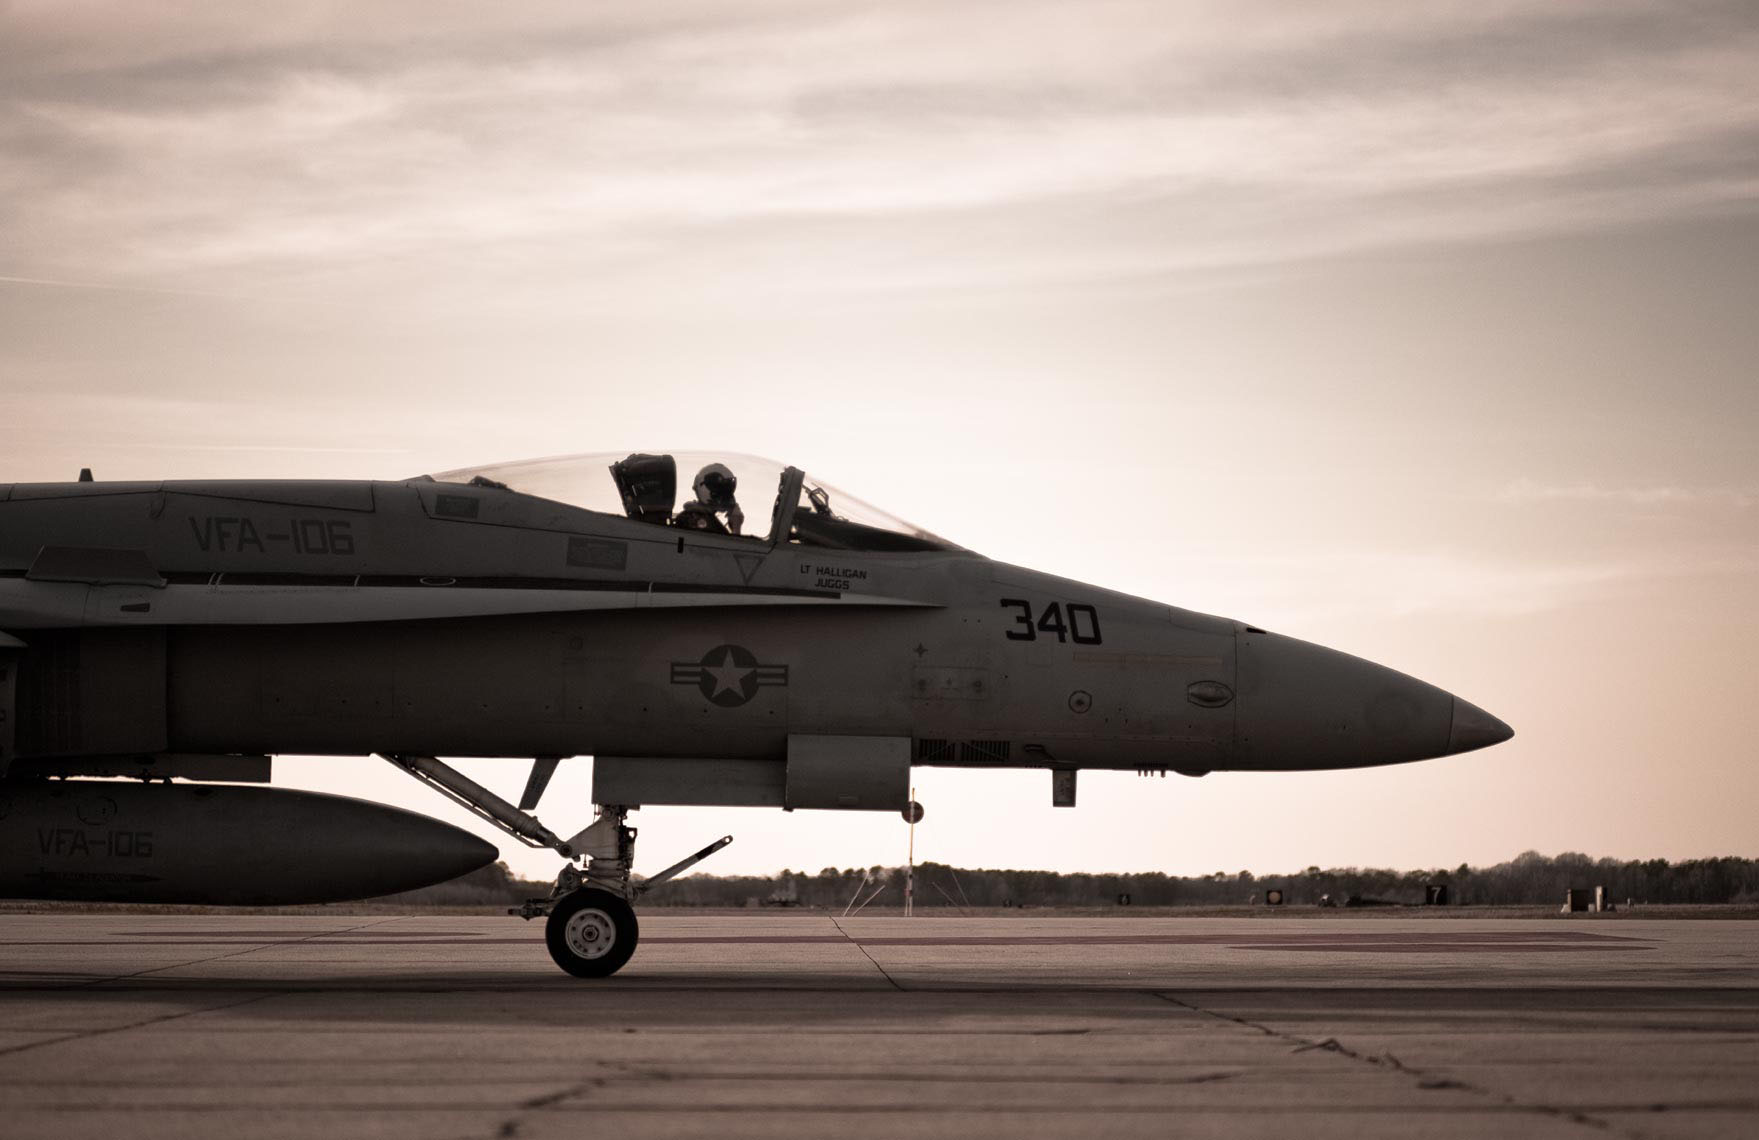 US_NAVY_F18_Hornet-taxiing-option.jpg